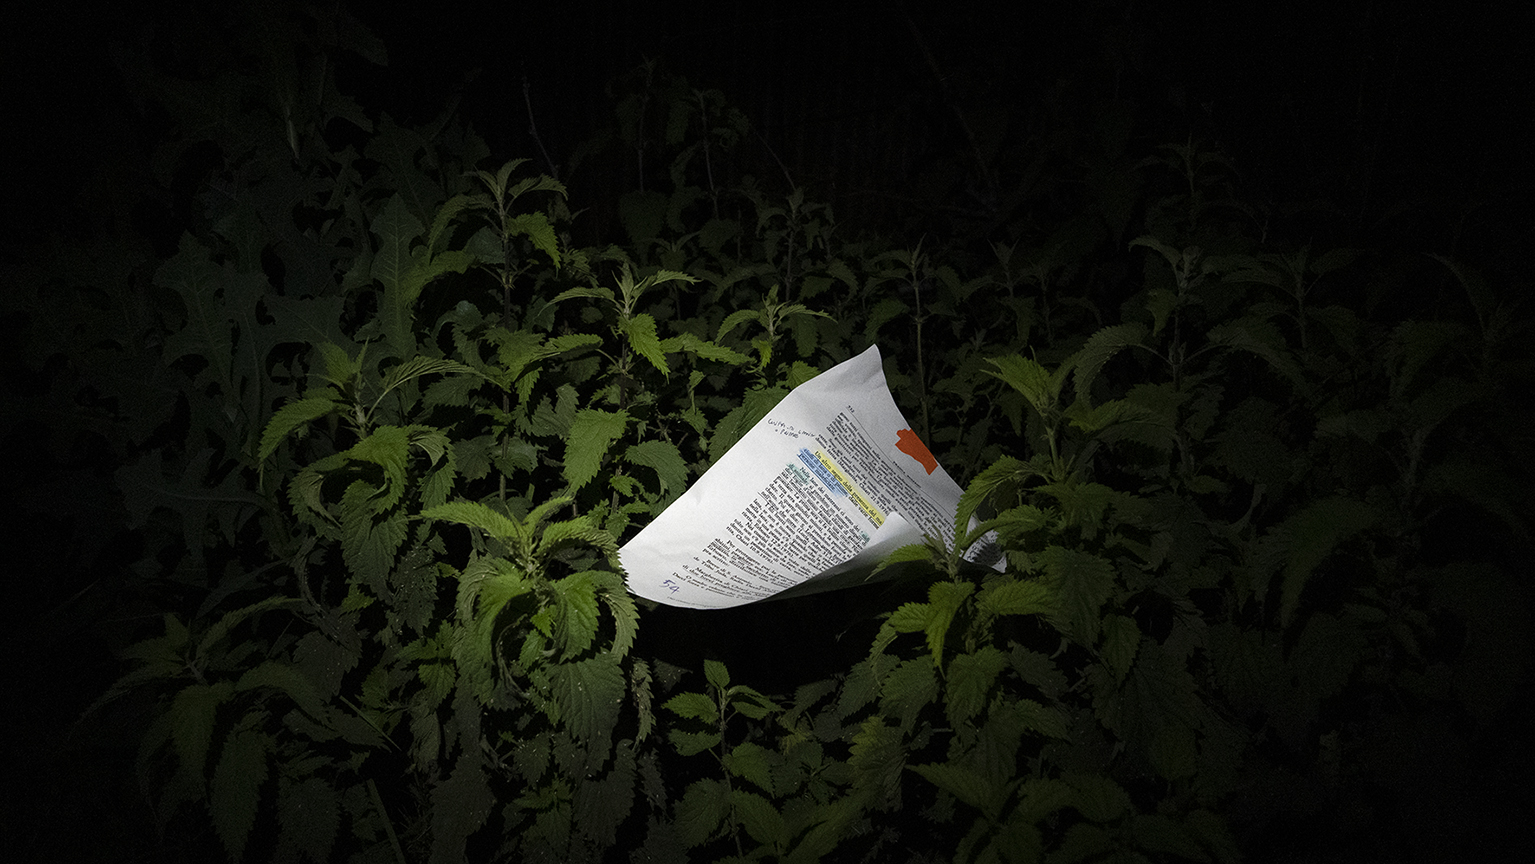 A piece of paper with unredable text printed on it is nestled into a patch of greenery at night